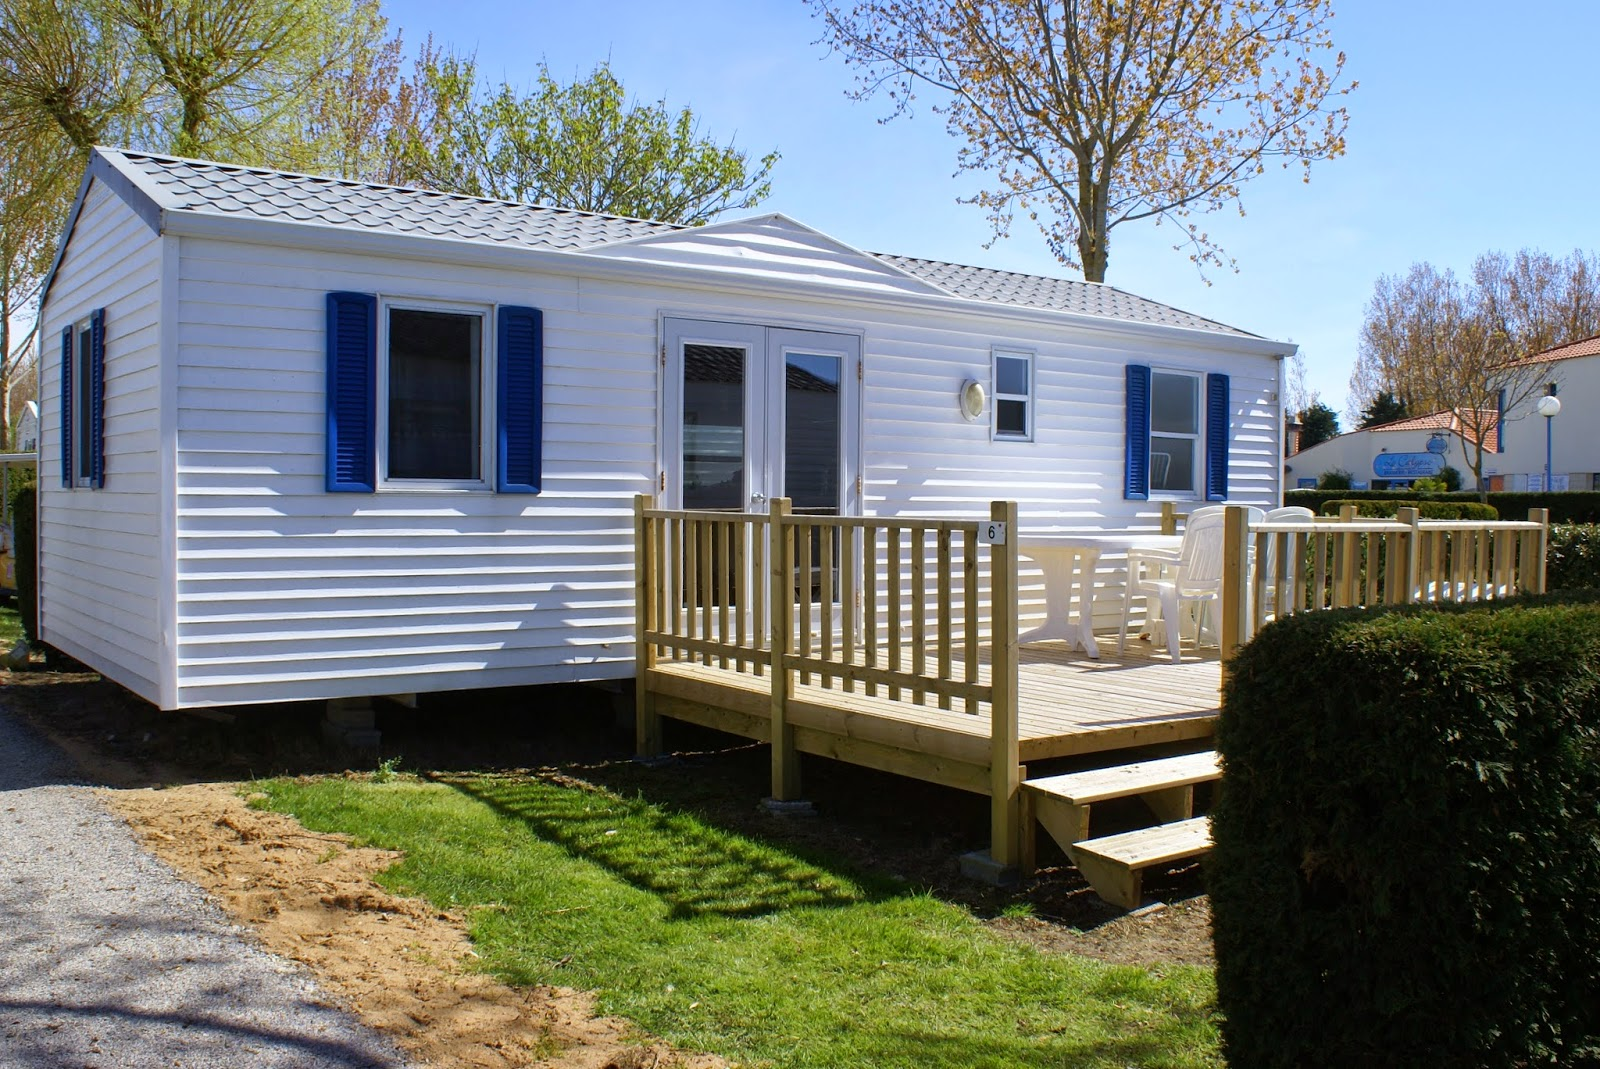 Pictures of mobile homes decorating ideas with terrasse Design my mobile home